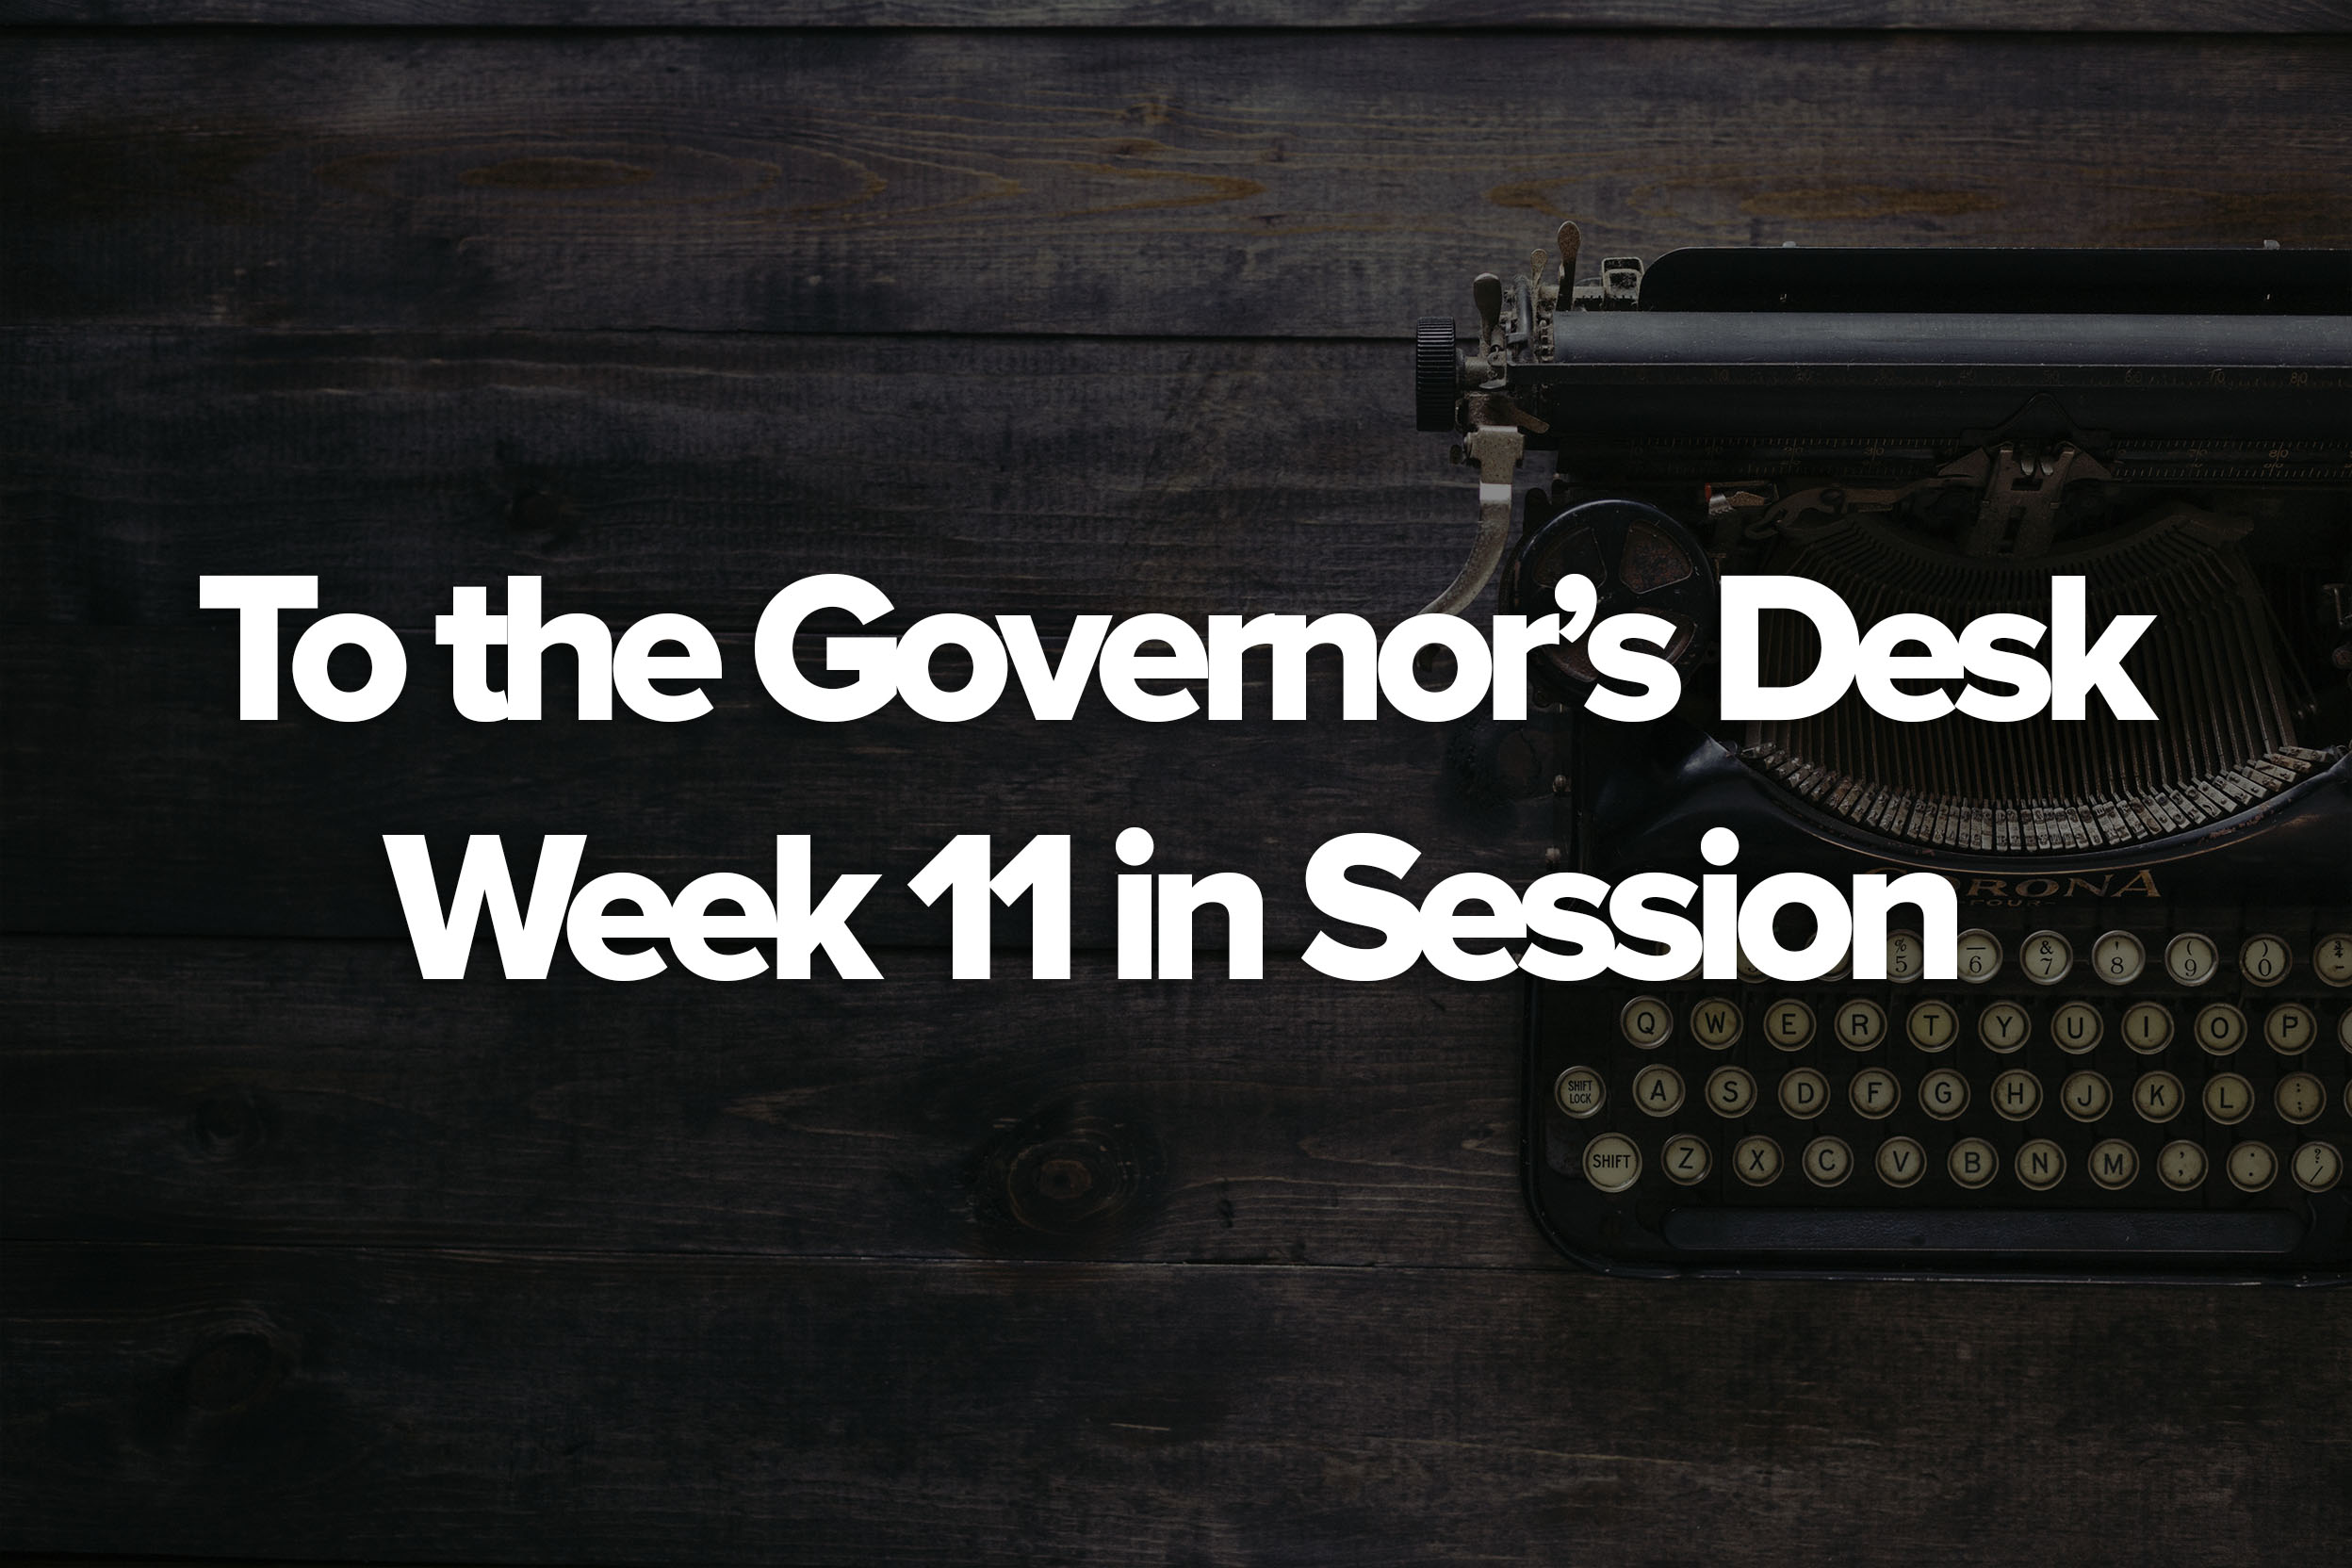 week 11 to the governors desk.jpg